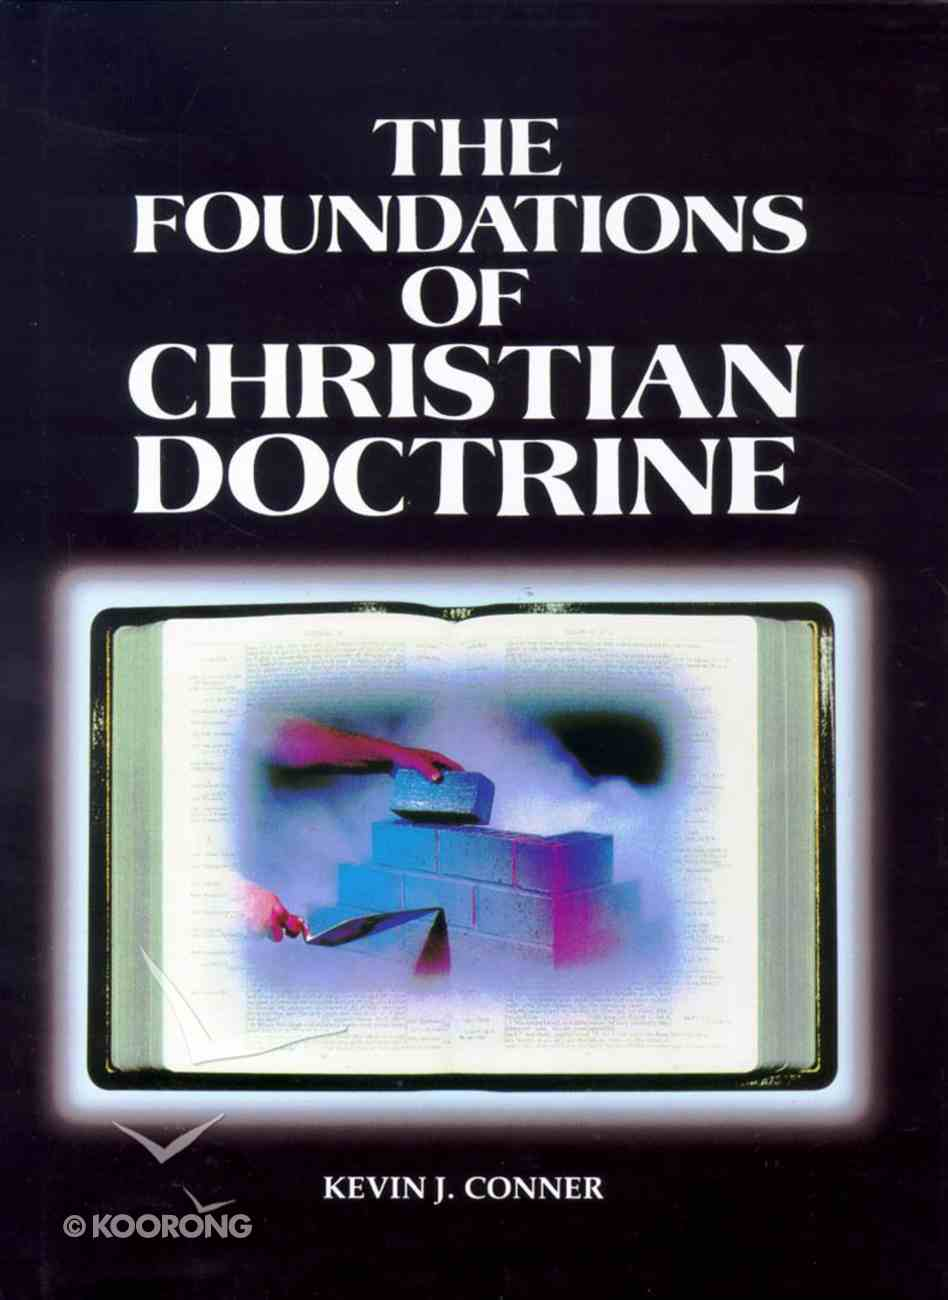 The Foundations of Christian Doctrine (Reprint 2018) Paperback